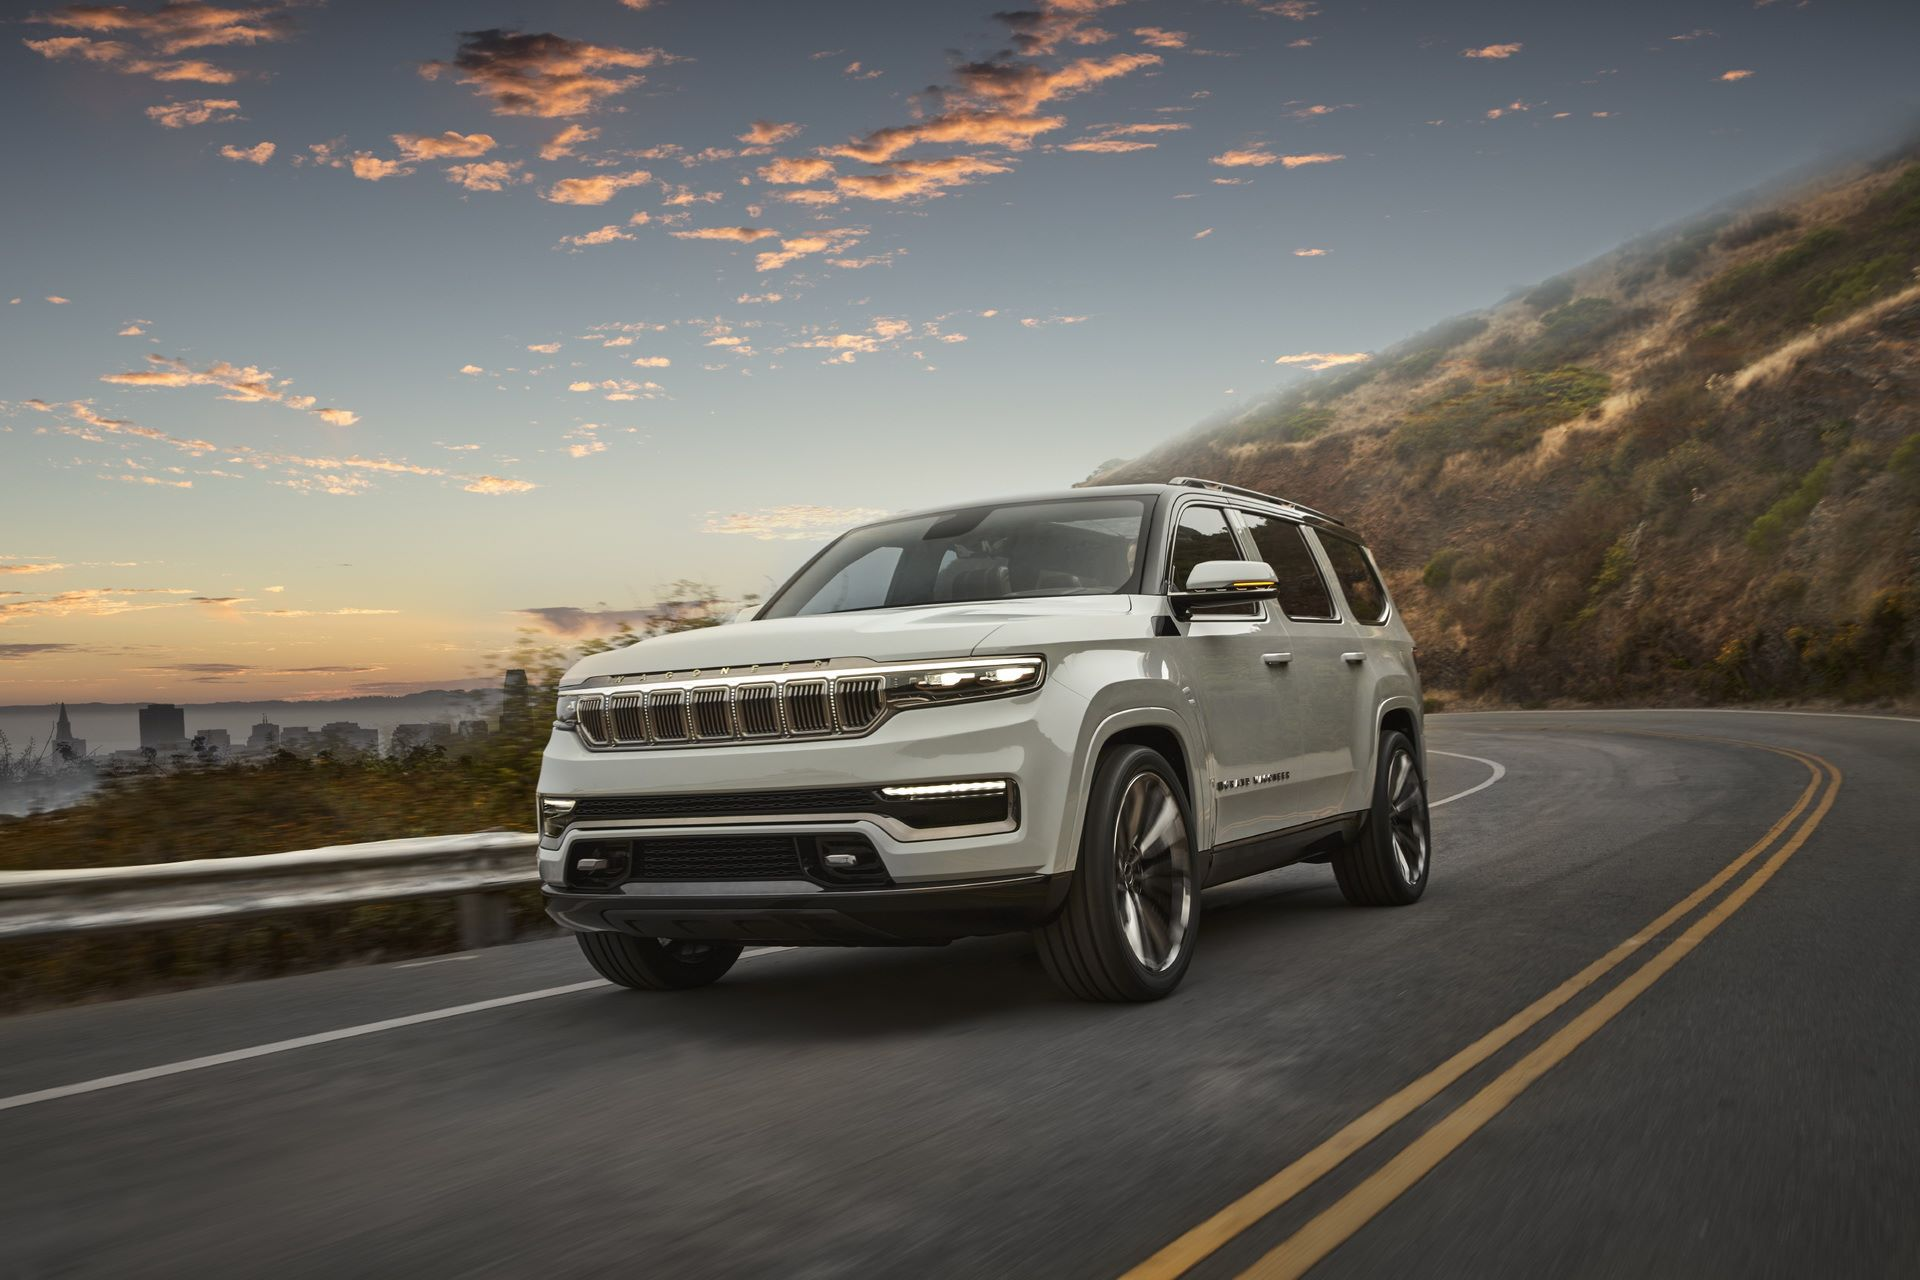 Jeep-Grand-Wagoneer-Concept-5